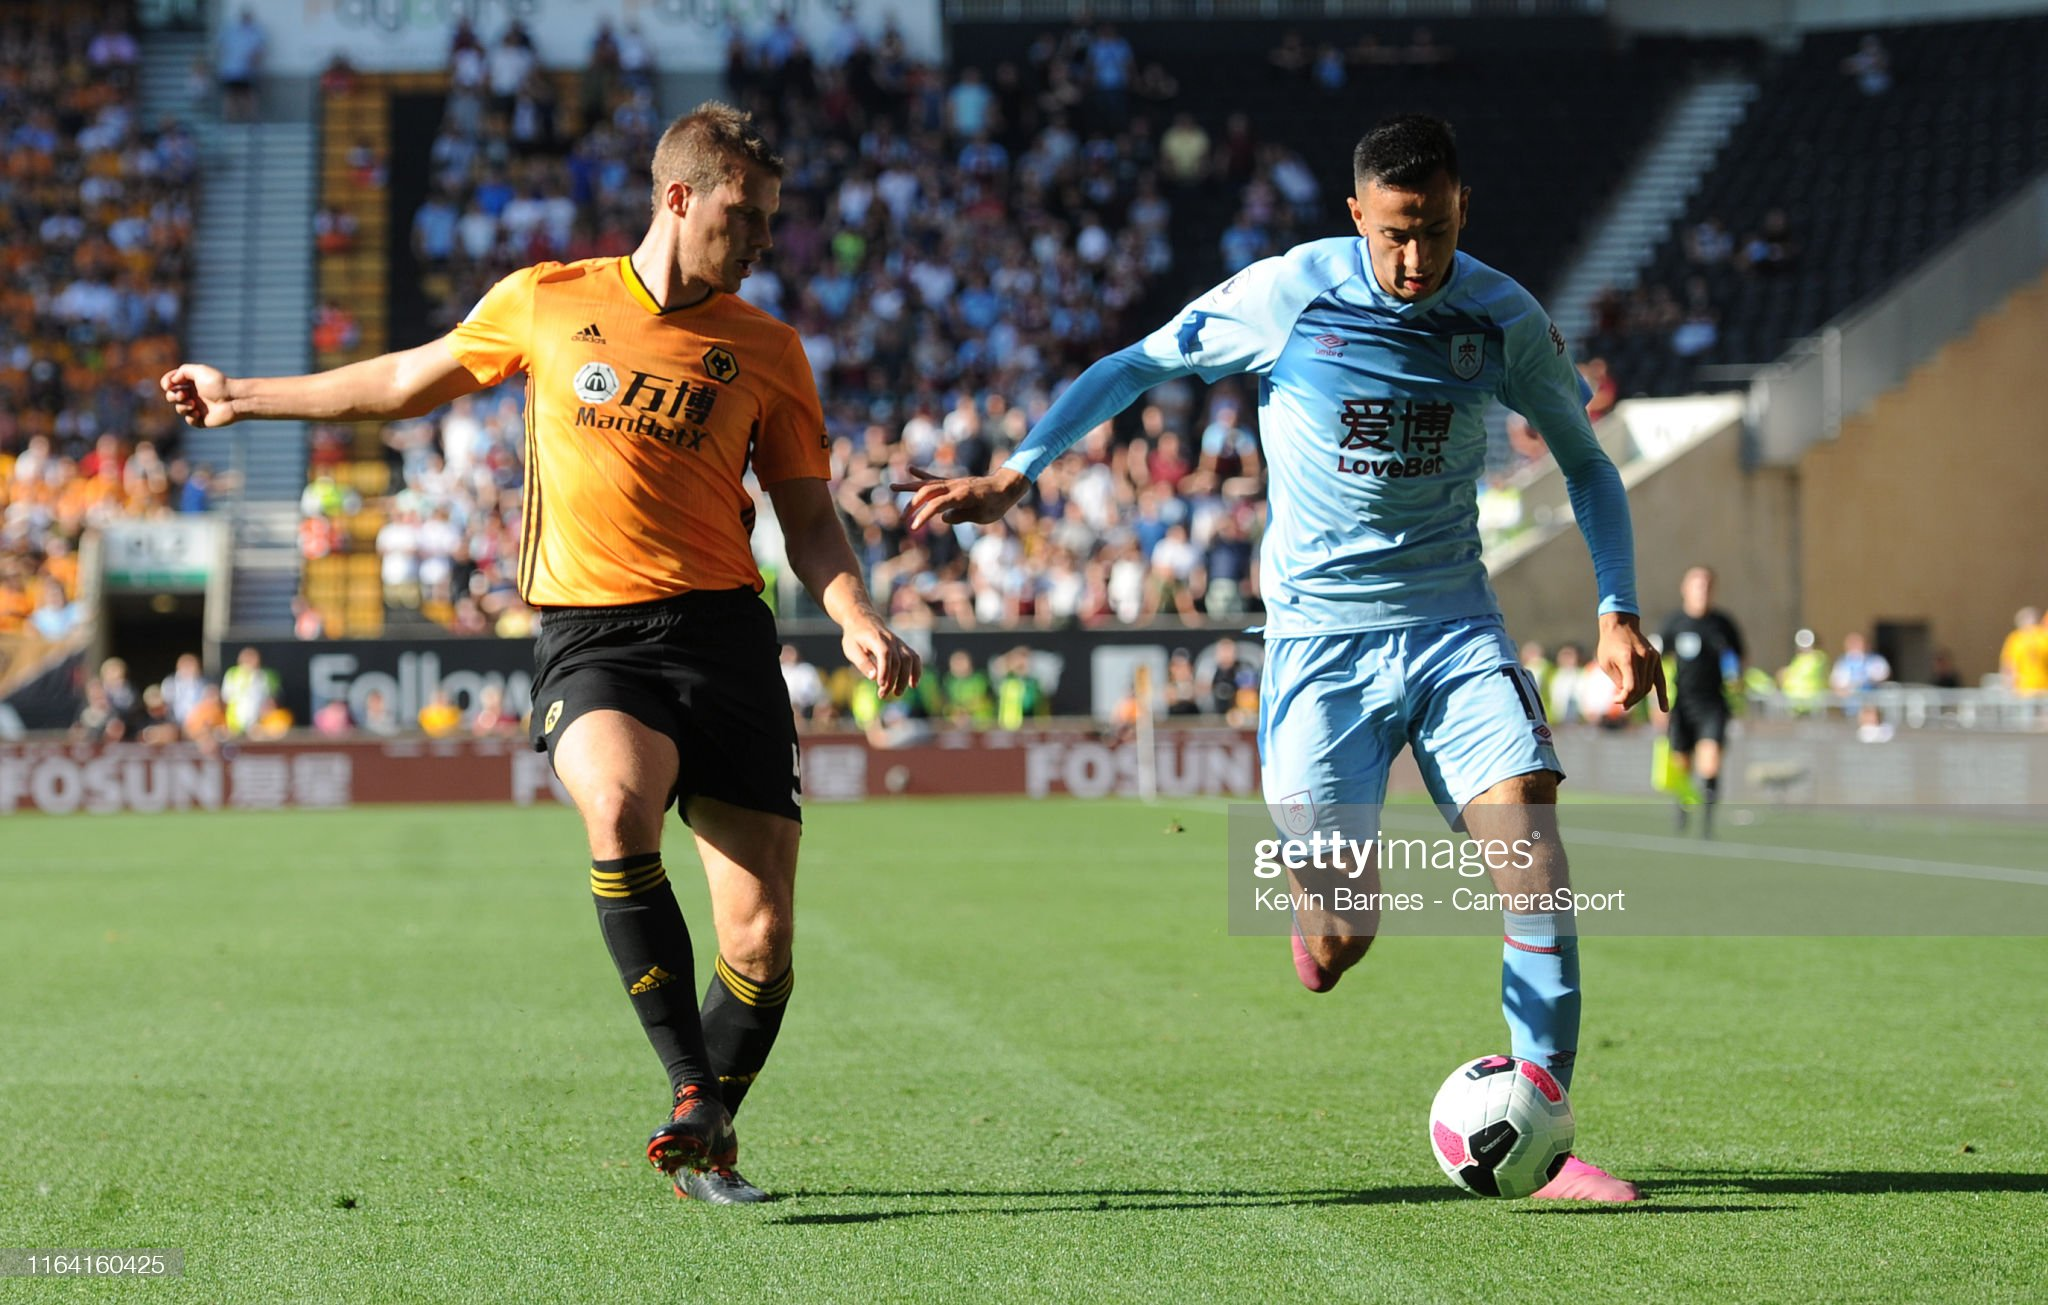 Burnley vs Wolves Preview, prediction and odds